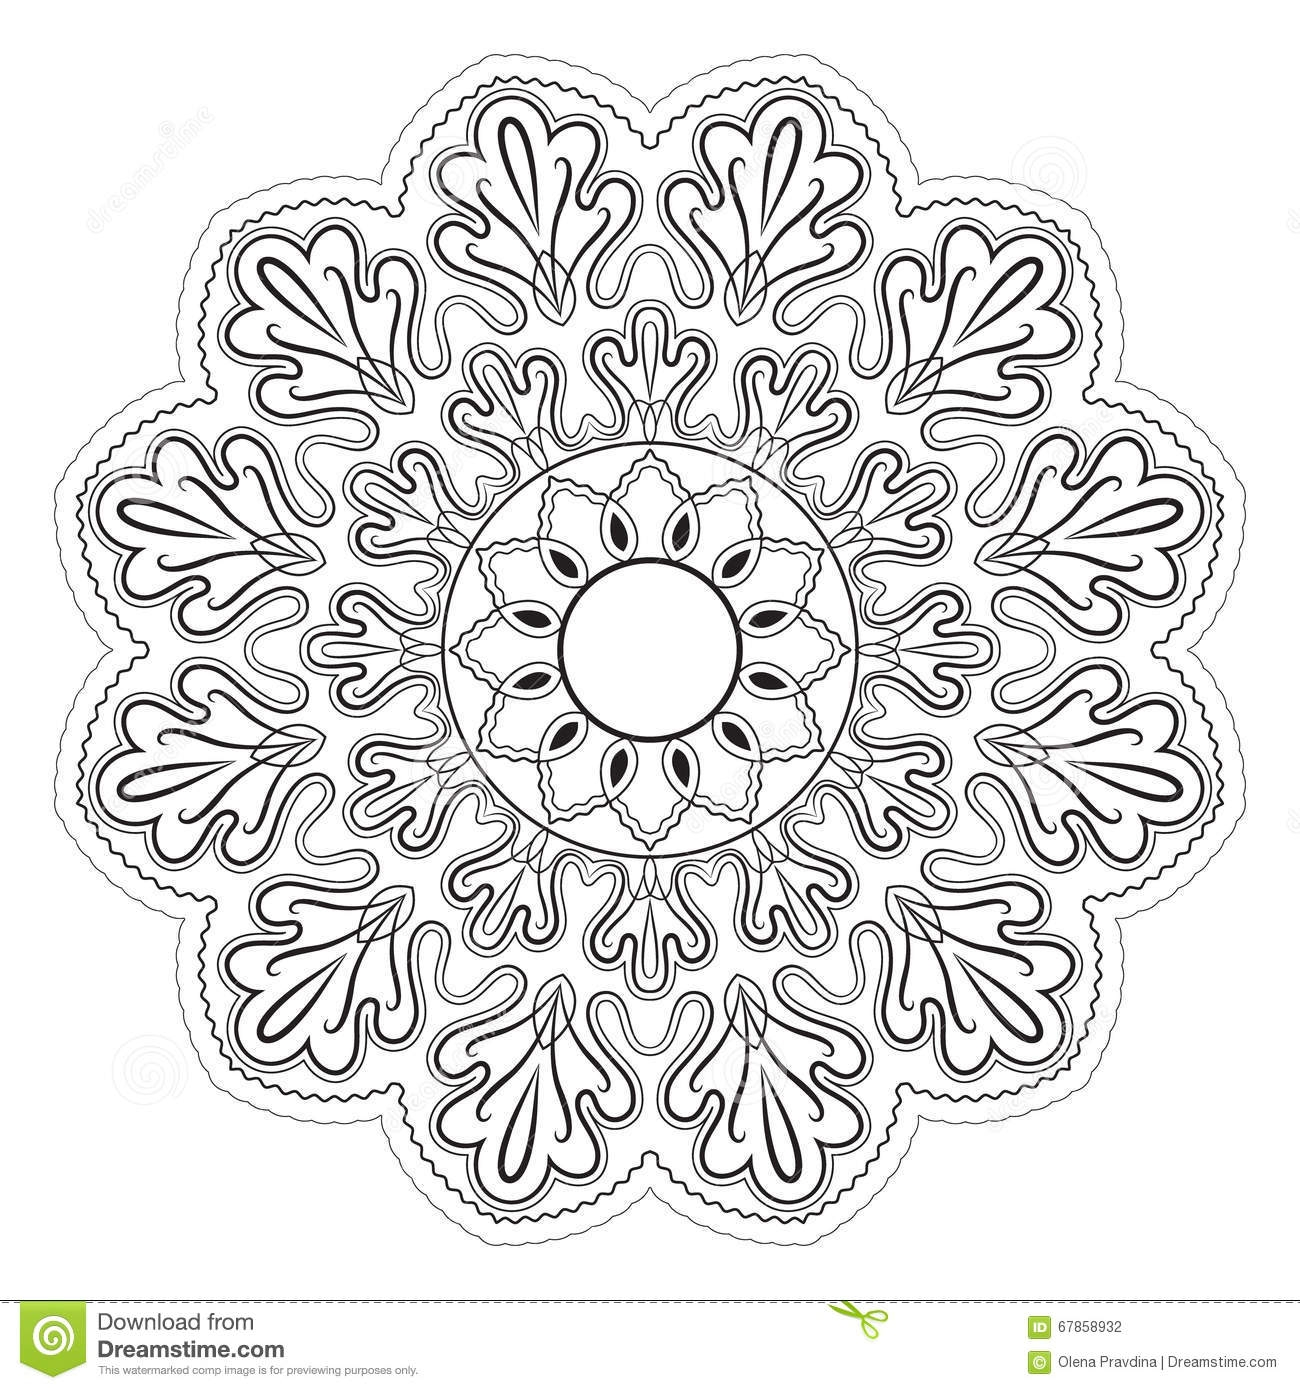 kaleidoscope coloring pages - stock photo black white abstract pattern mandala vector design template art image